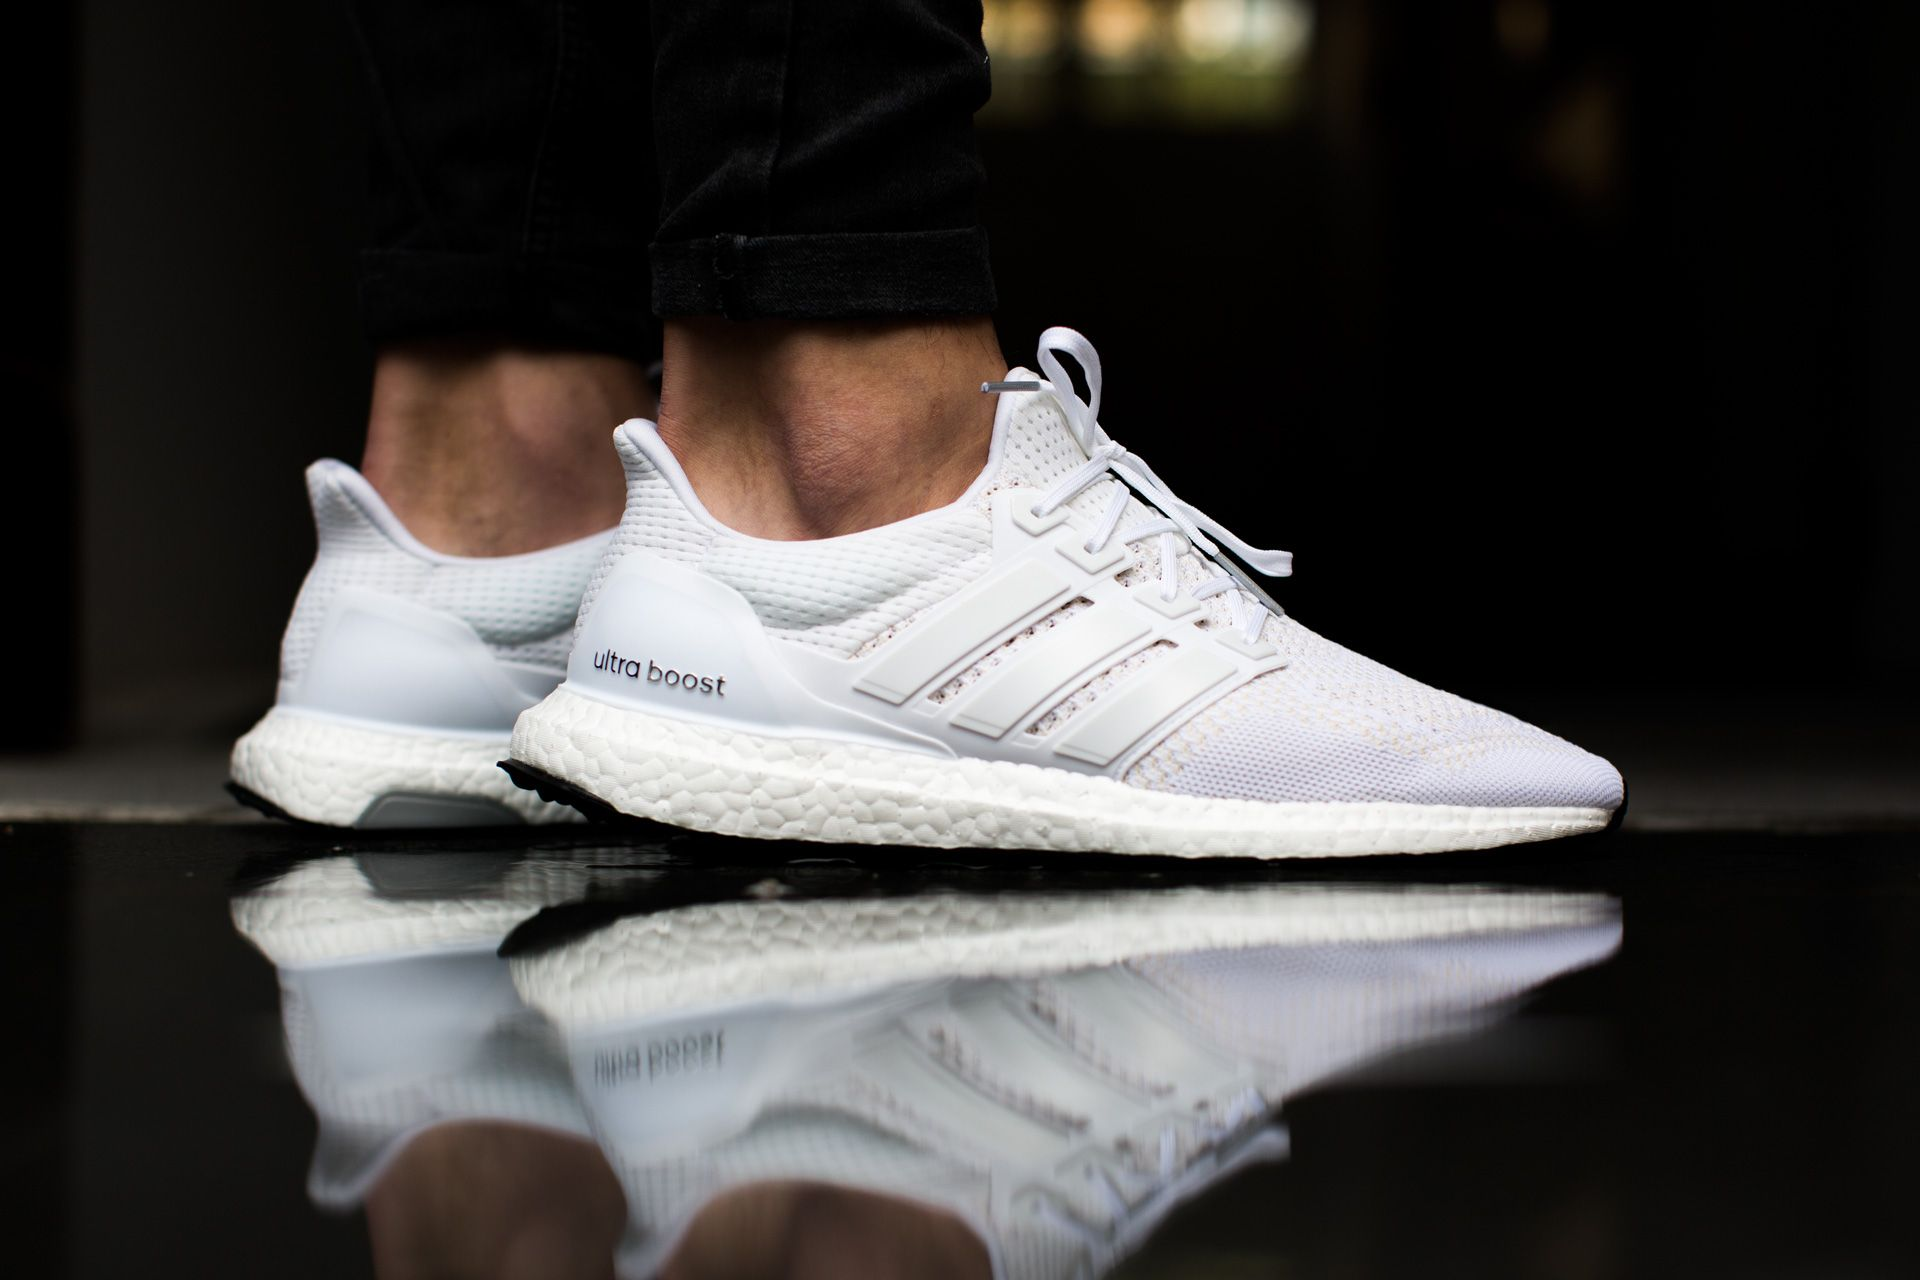 huge selection of 33ab9 0dbec adidas ultra boost www.tint-footwear.com adidas ultra boost all white  everything sneaker hype tint footwear studio munich